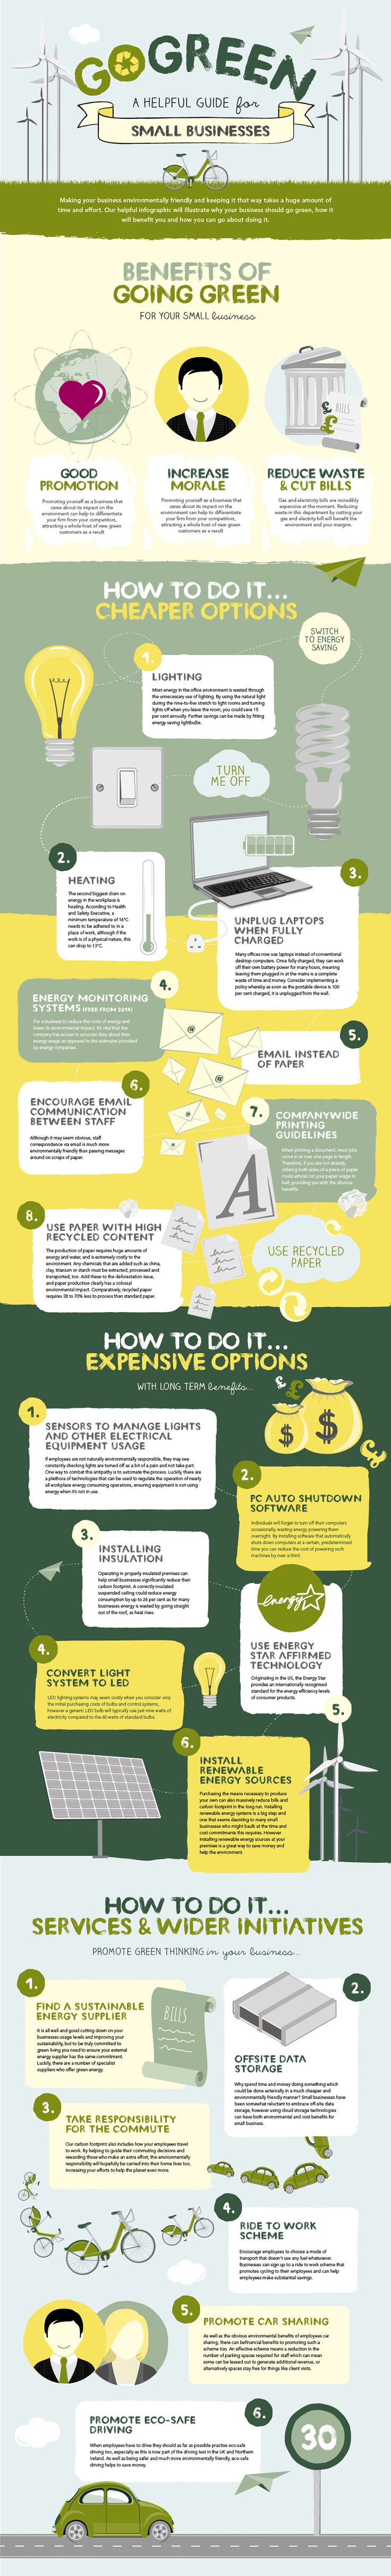 Unique Infographic Design, Go Green - A Helpful Guide For Small Businesses via @abrebeanu #Infographic #Design